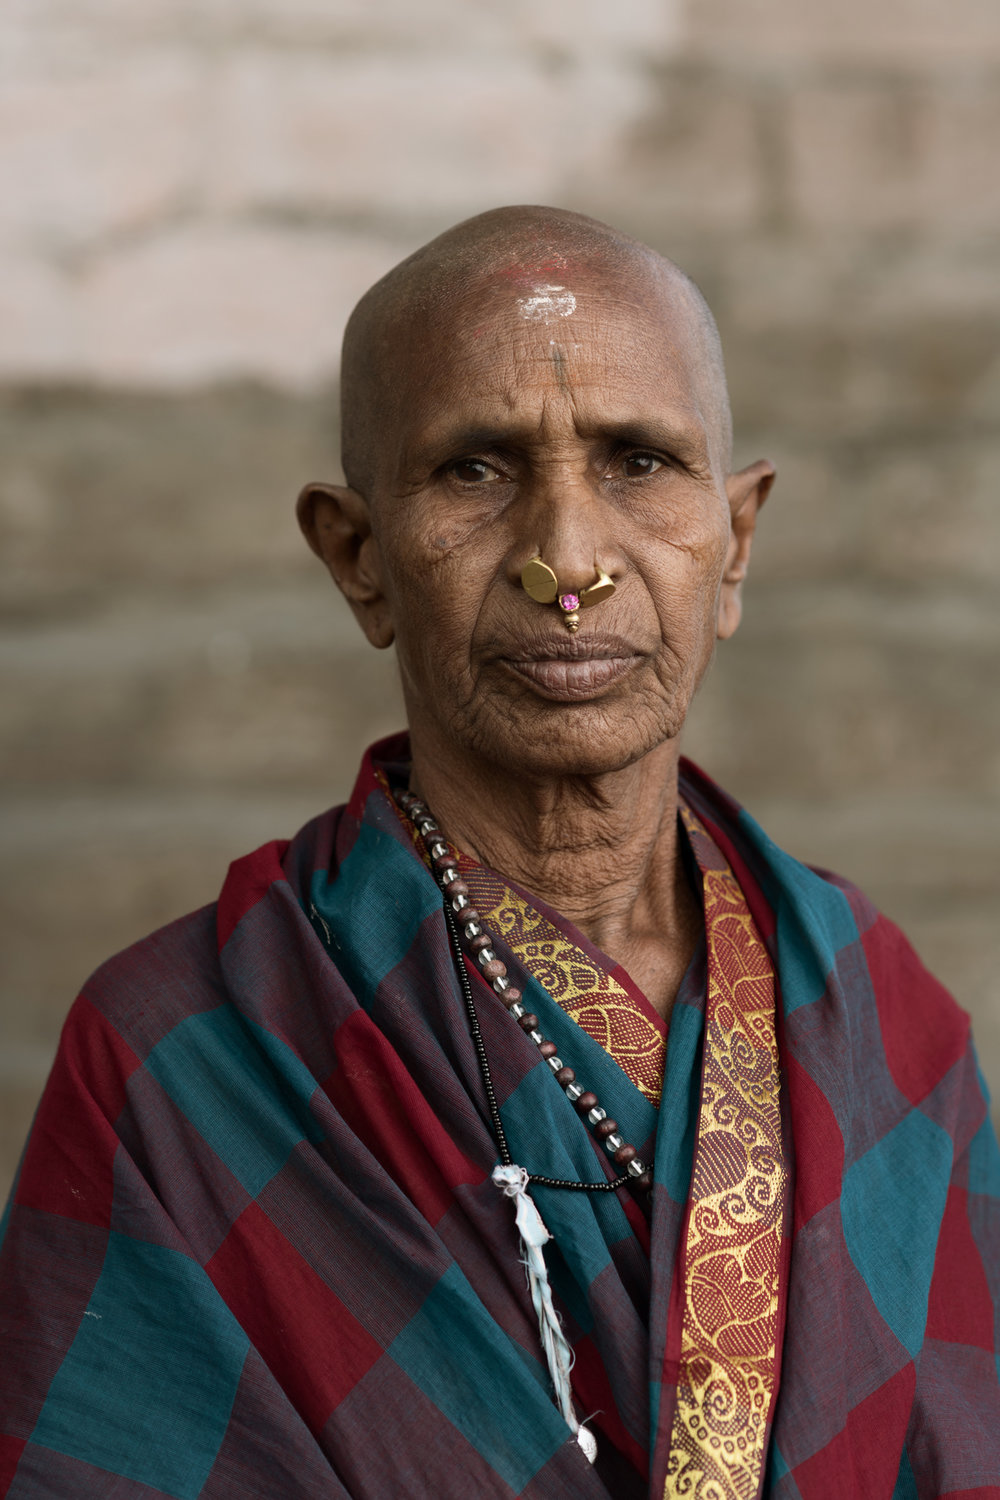 Varanasi_portrait_travel_photography_Manchester_Adventure_Photographer_Jan_Bella2.jpg